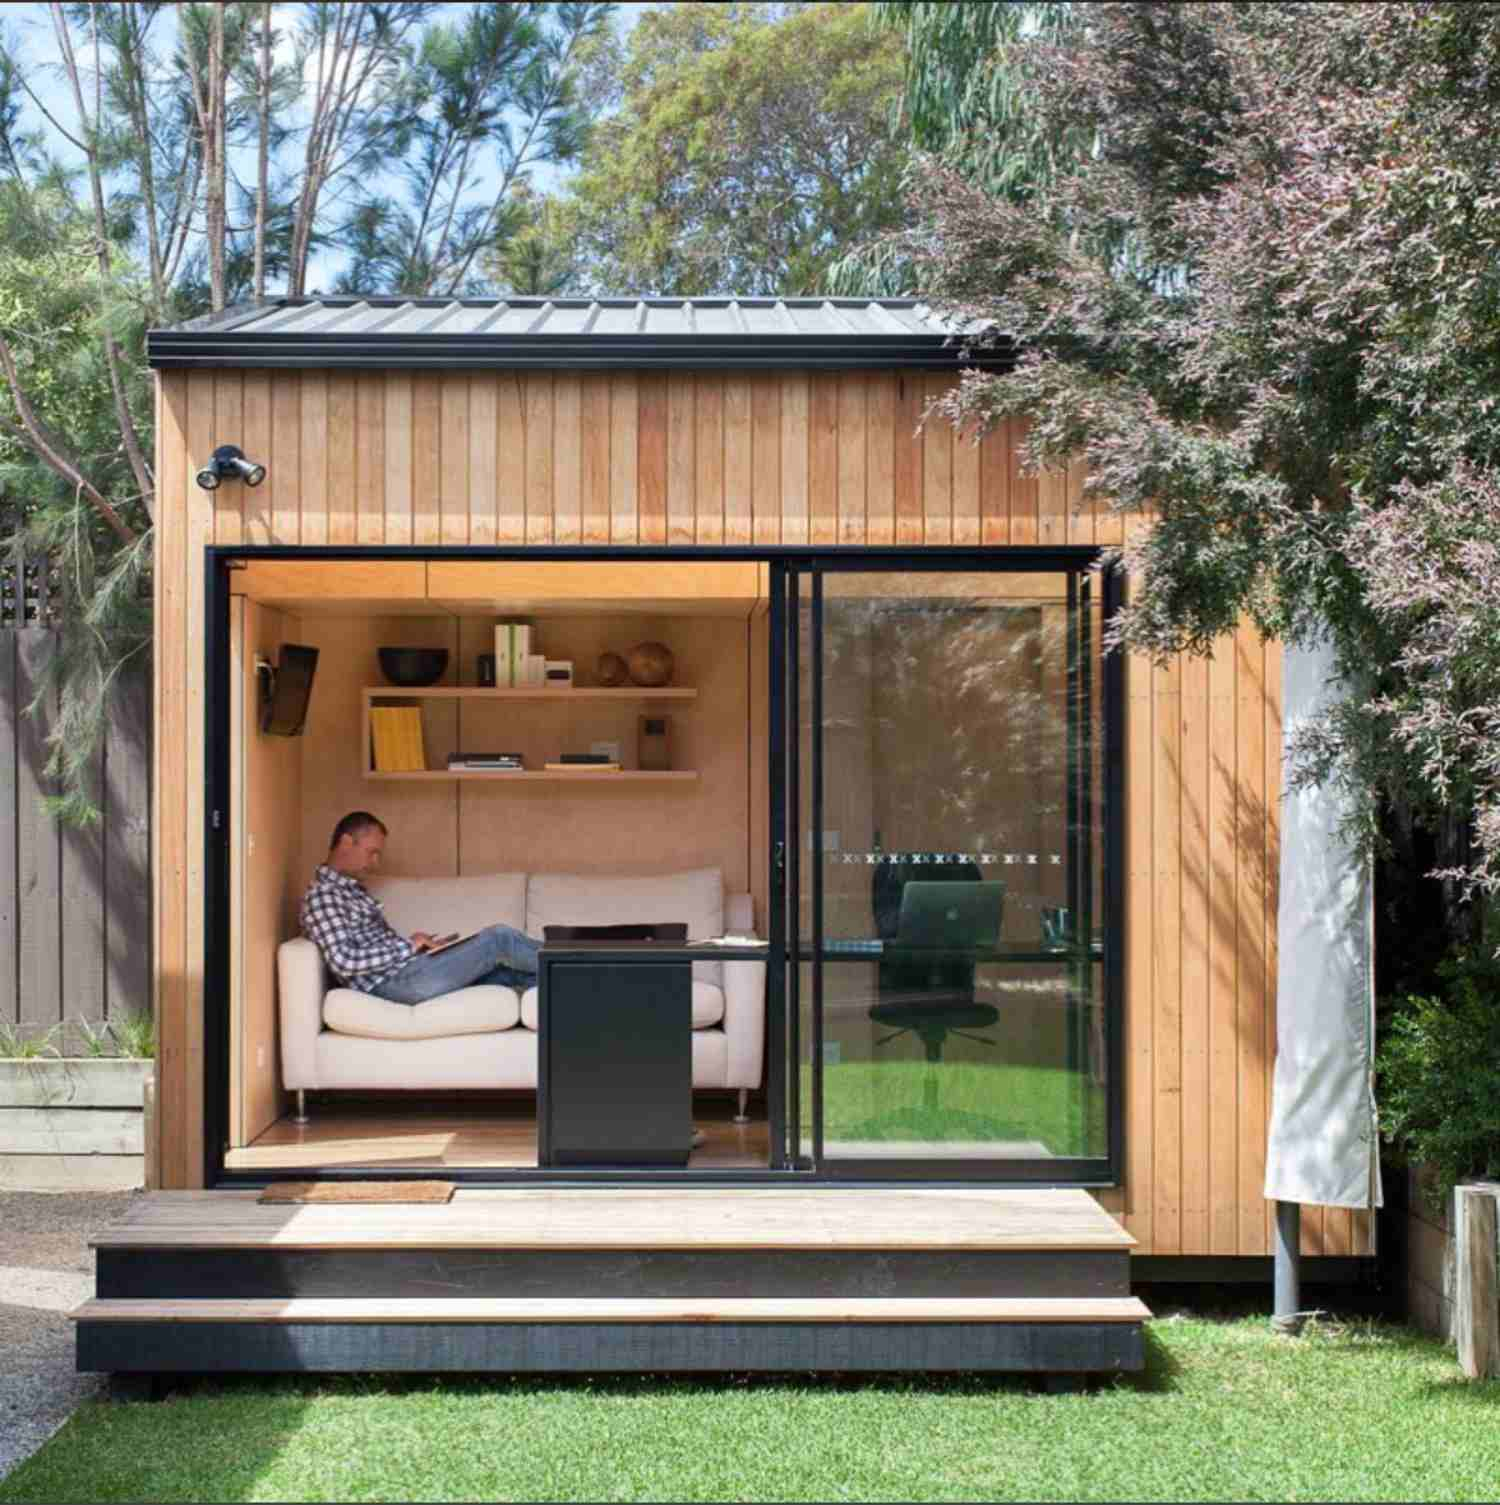 15 Some of the Coolest Initiatives of How to Makeover ... on Backyard House Ideas id=44200